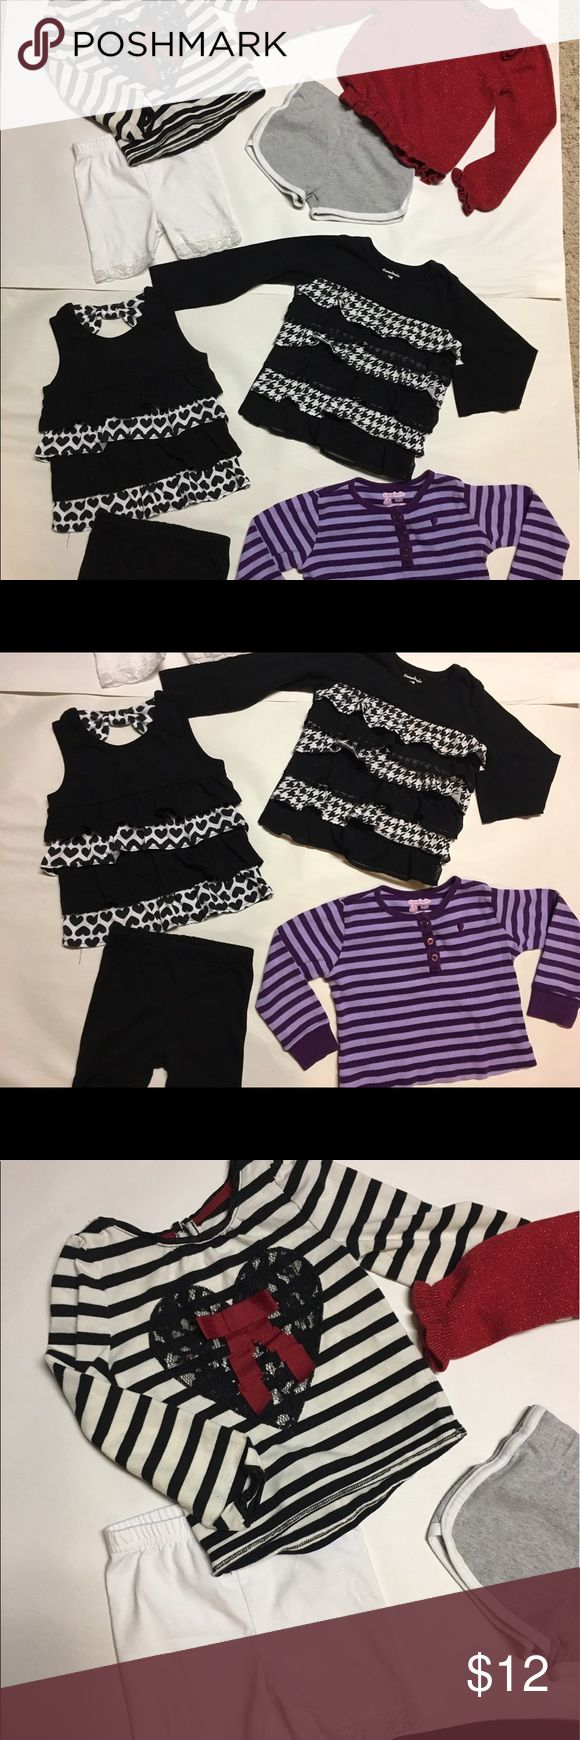 Lot of 8 pcs 2T Garanimals All are Garanimals brand except for black and white striped top with heart and bow that is a Cherokee brand, the red sparkle long sleeve top is Children's Place. Mixed sizes of 24M-2T. Children's Place Matching Sets